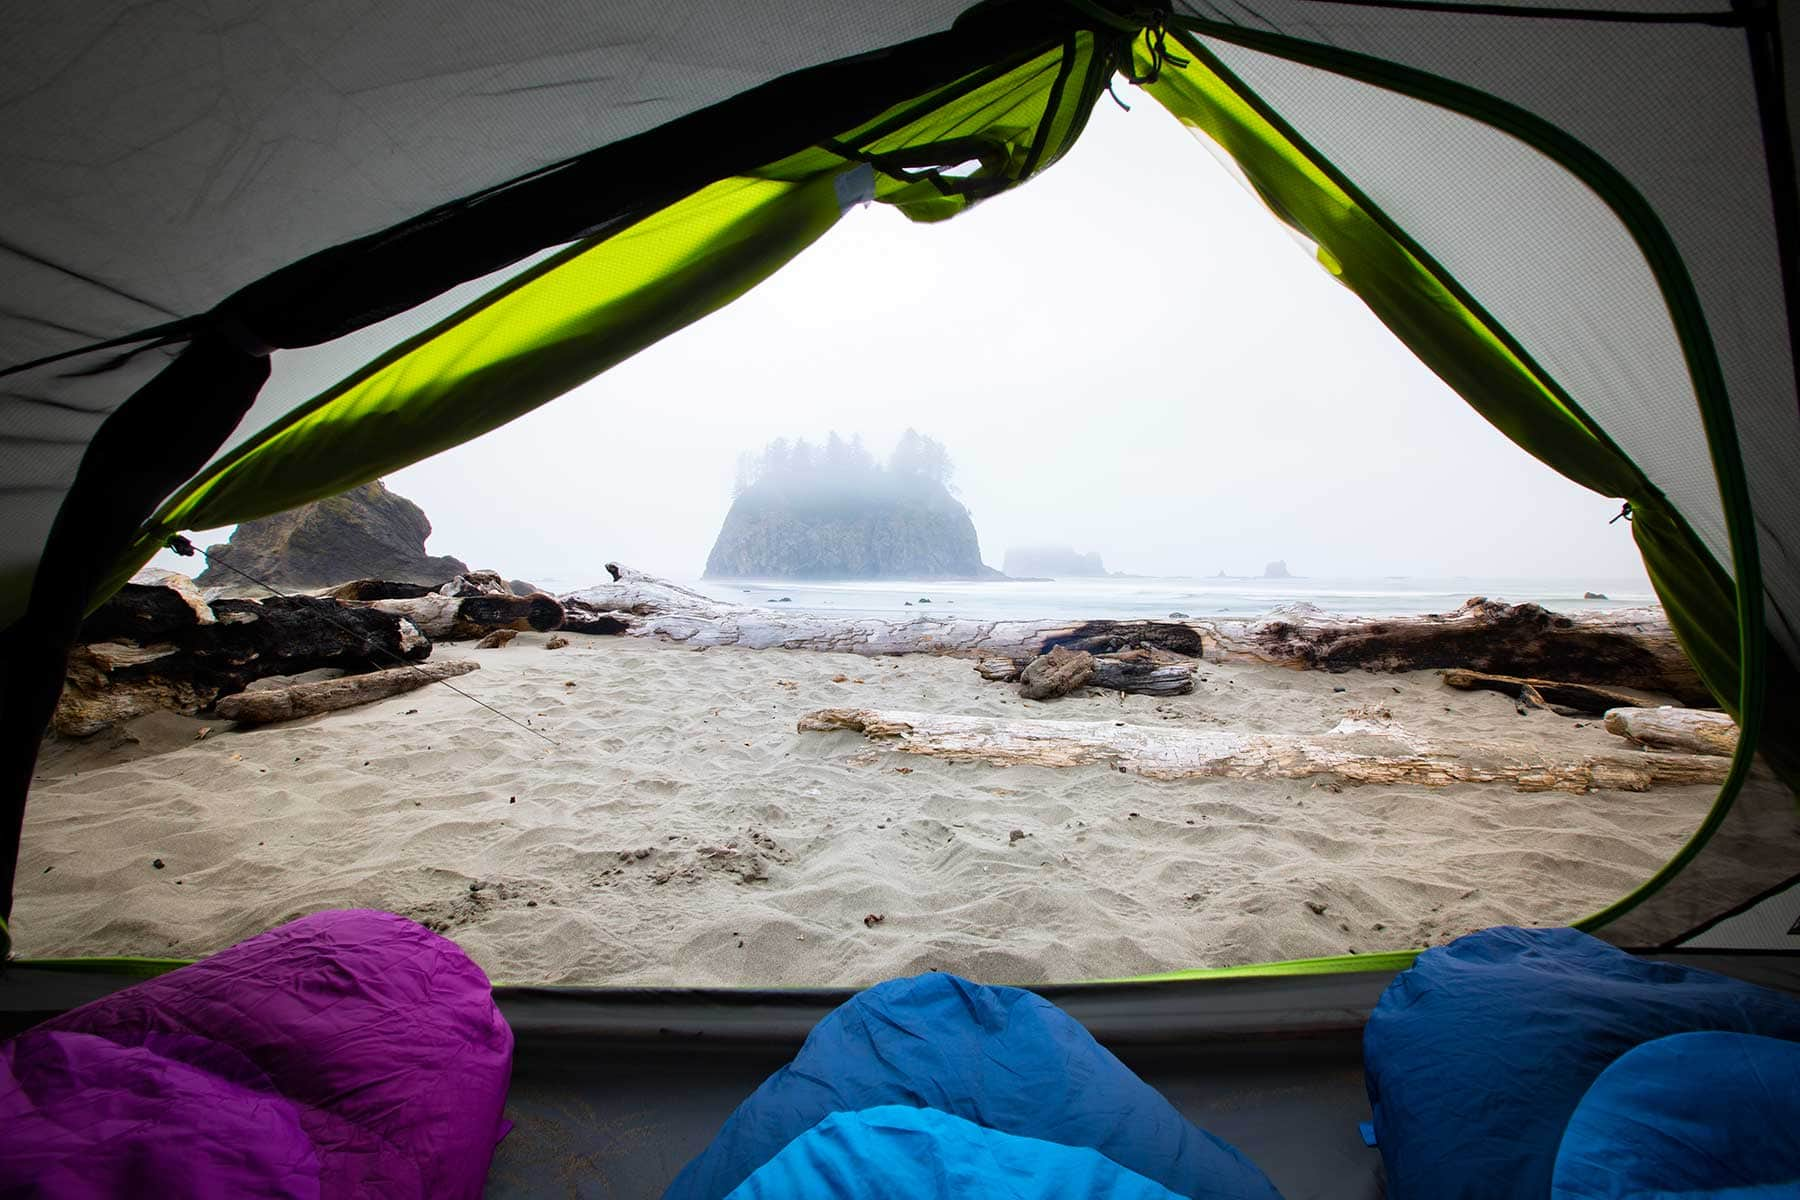 Enjoying the view from the tent at La Push Beach